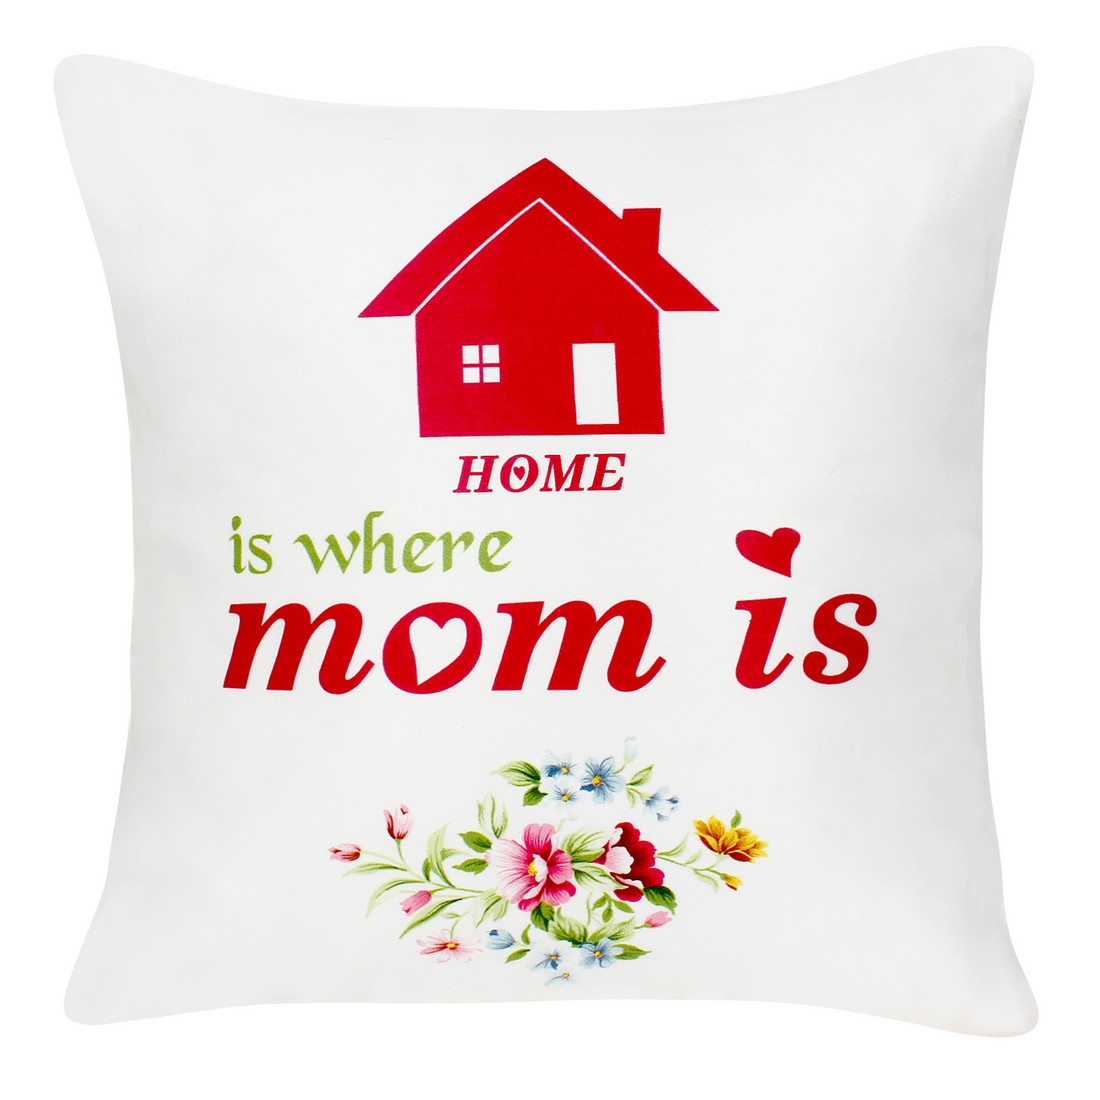 Sattva Premium Digital Printed Cushion Cover For Mother Day CU033 With Filler Multicolor - Size 12x12